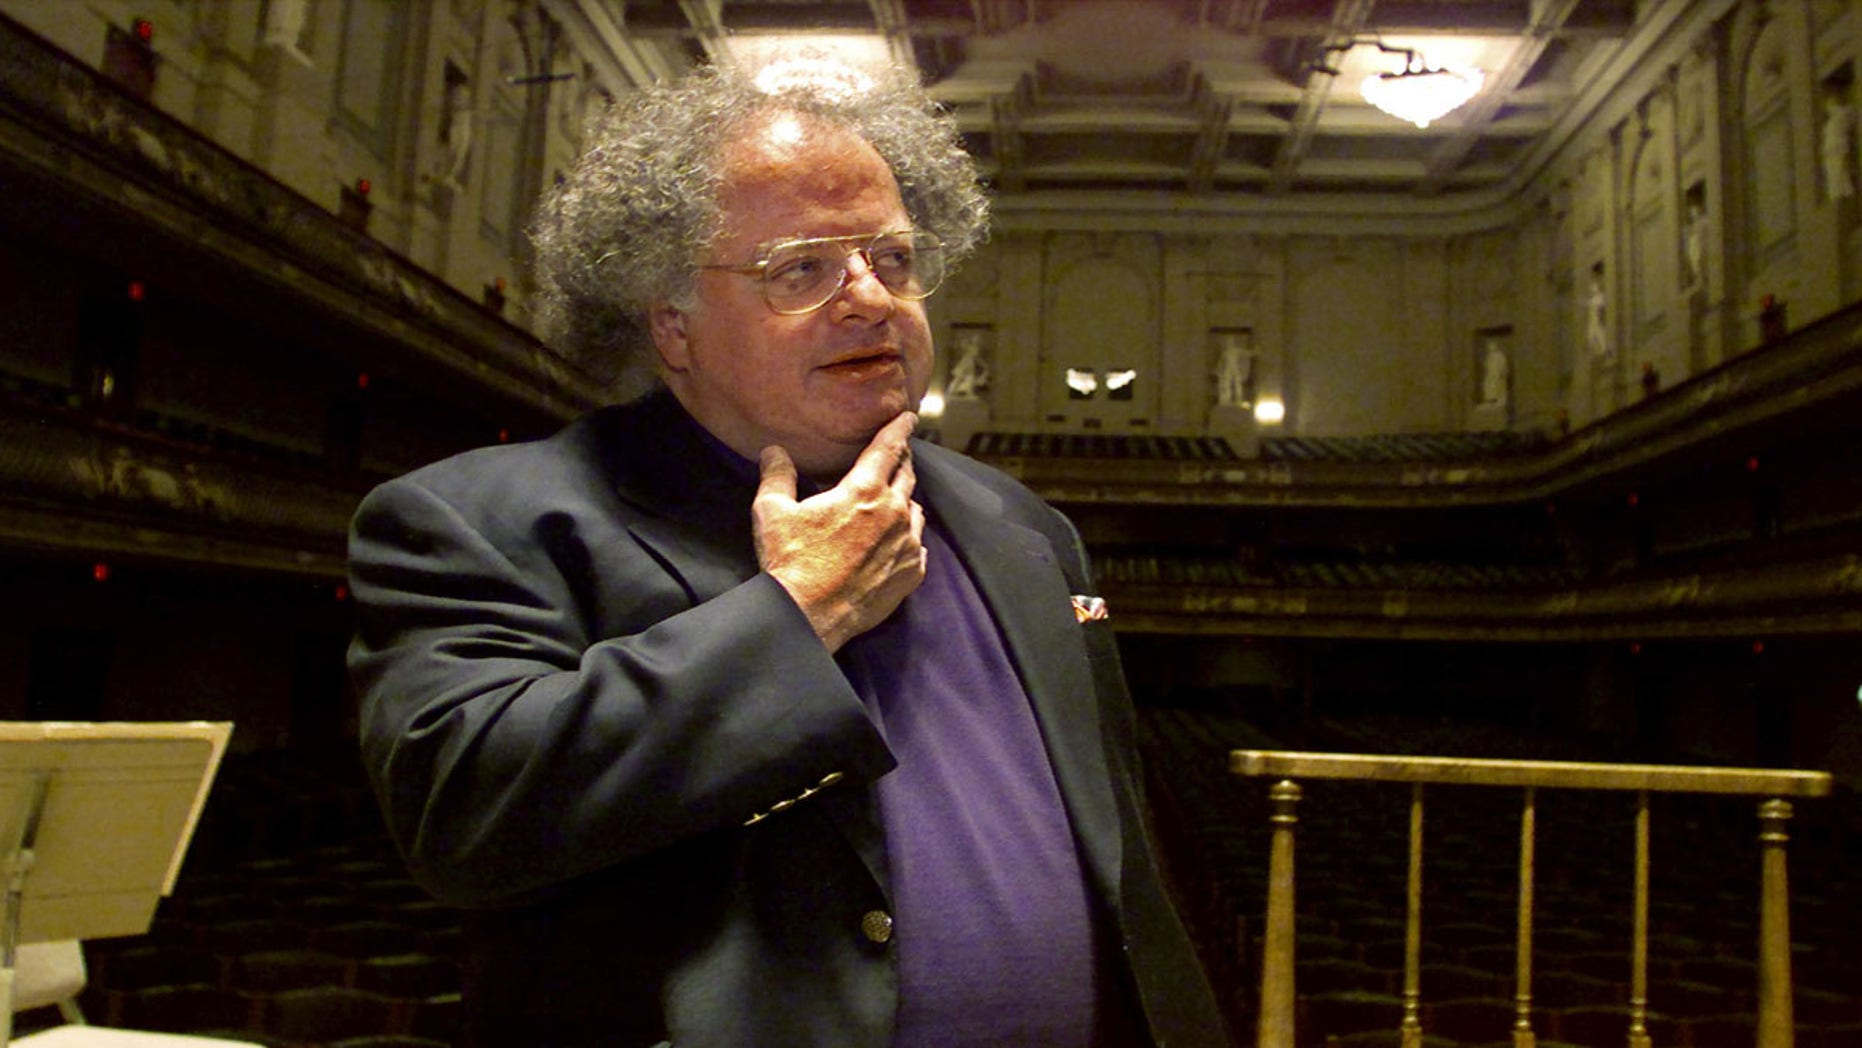 James Levine was accused of sexually harassing a minor by a former music student. Here Levine stands at the conductor's podium at Boston's Symphony Hall in 2001.